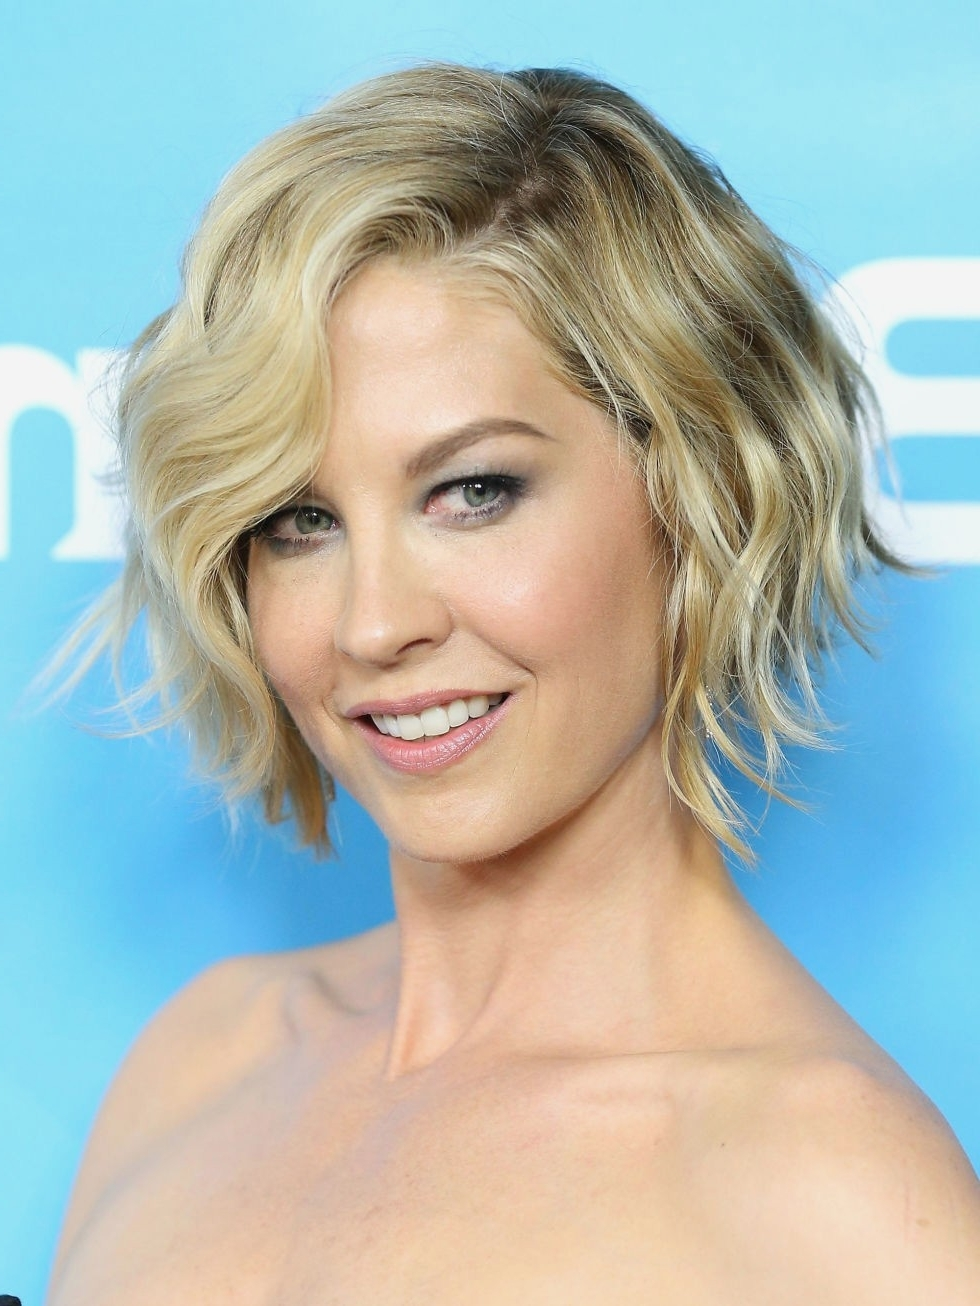 Short Hairstyles : Awesome Short Shaggy Hairstyles For Round Faces Throughout Most Popular Shaggy Short Hairstyles For Round Faces (View 13 of 15)